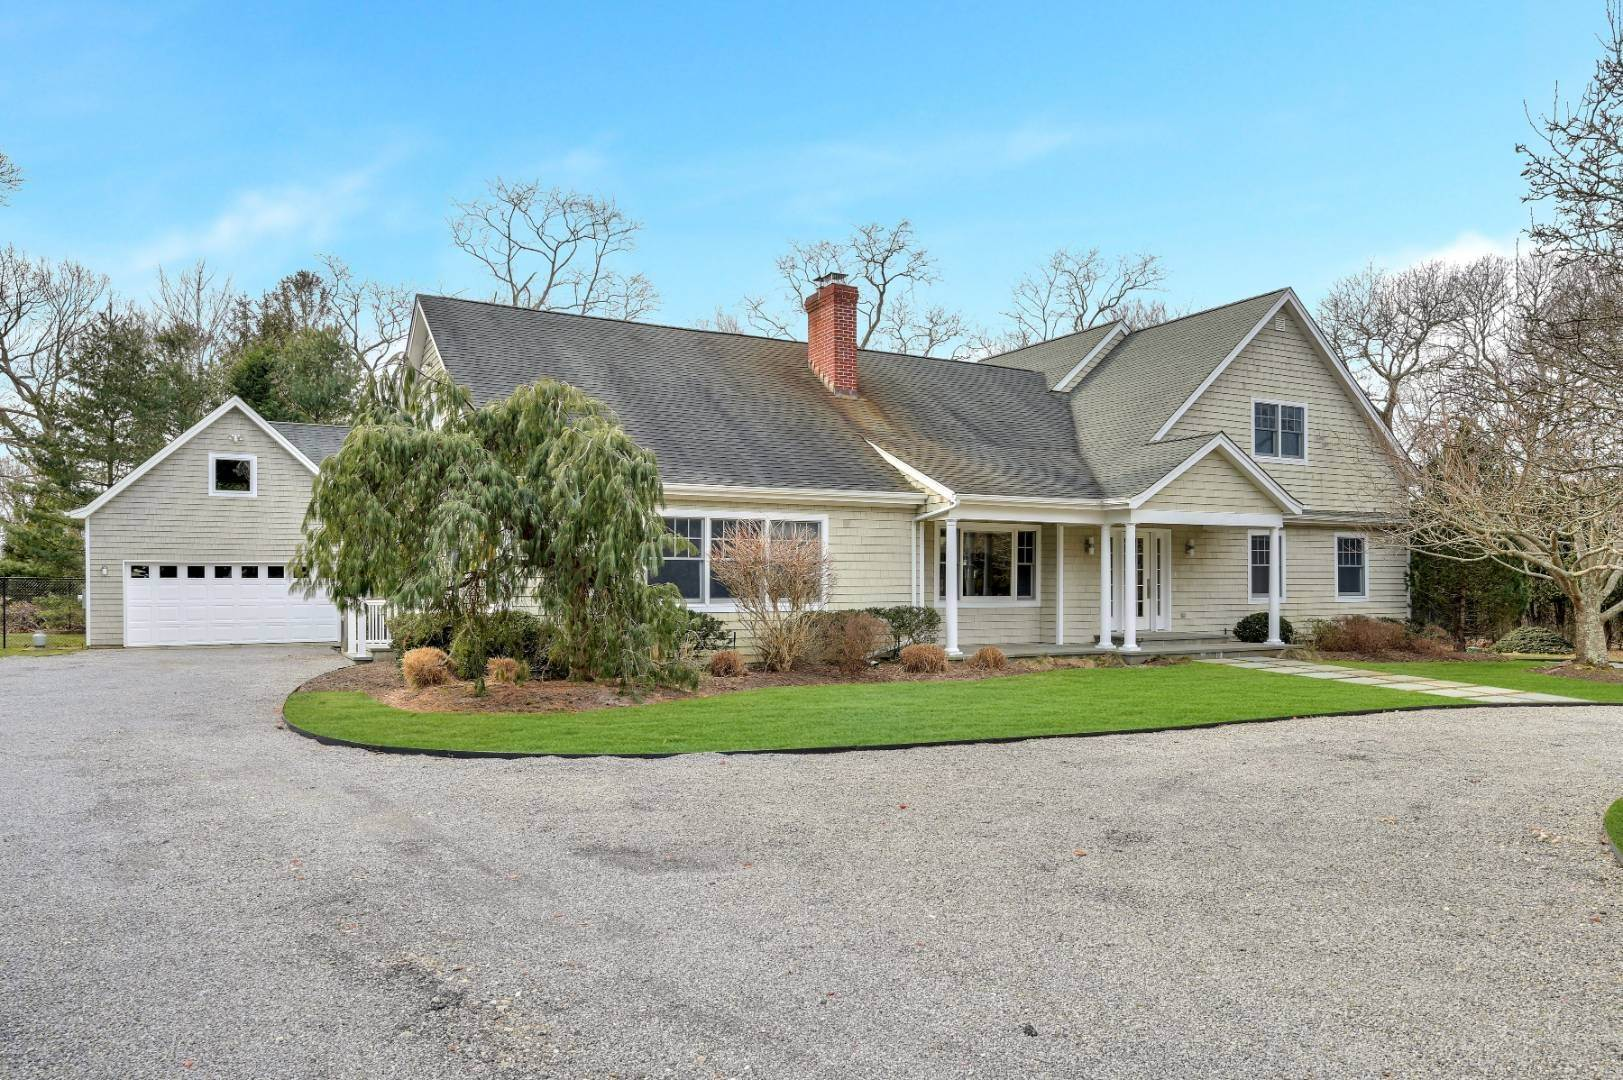 Single Family Home at Westhampton Beach Village Retreat Westhampton Beach Village, NY 11978